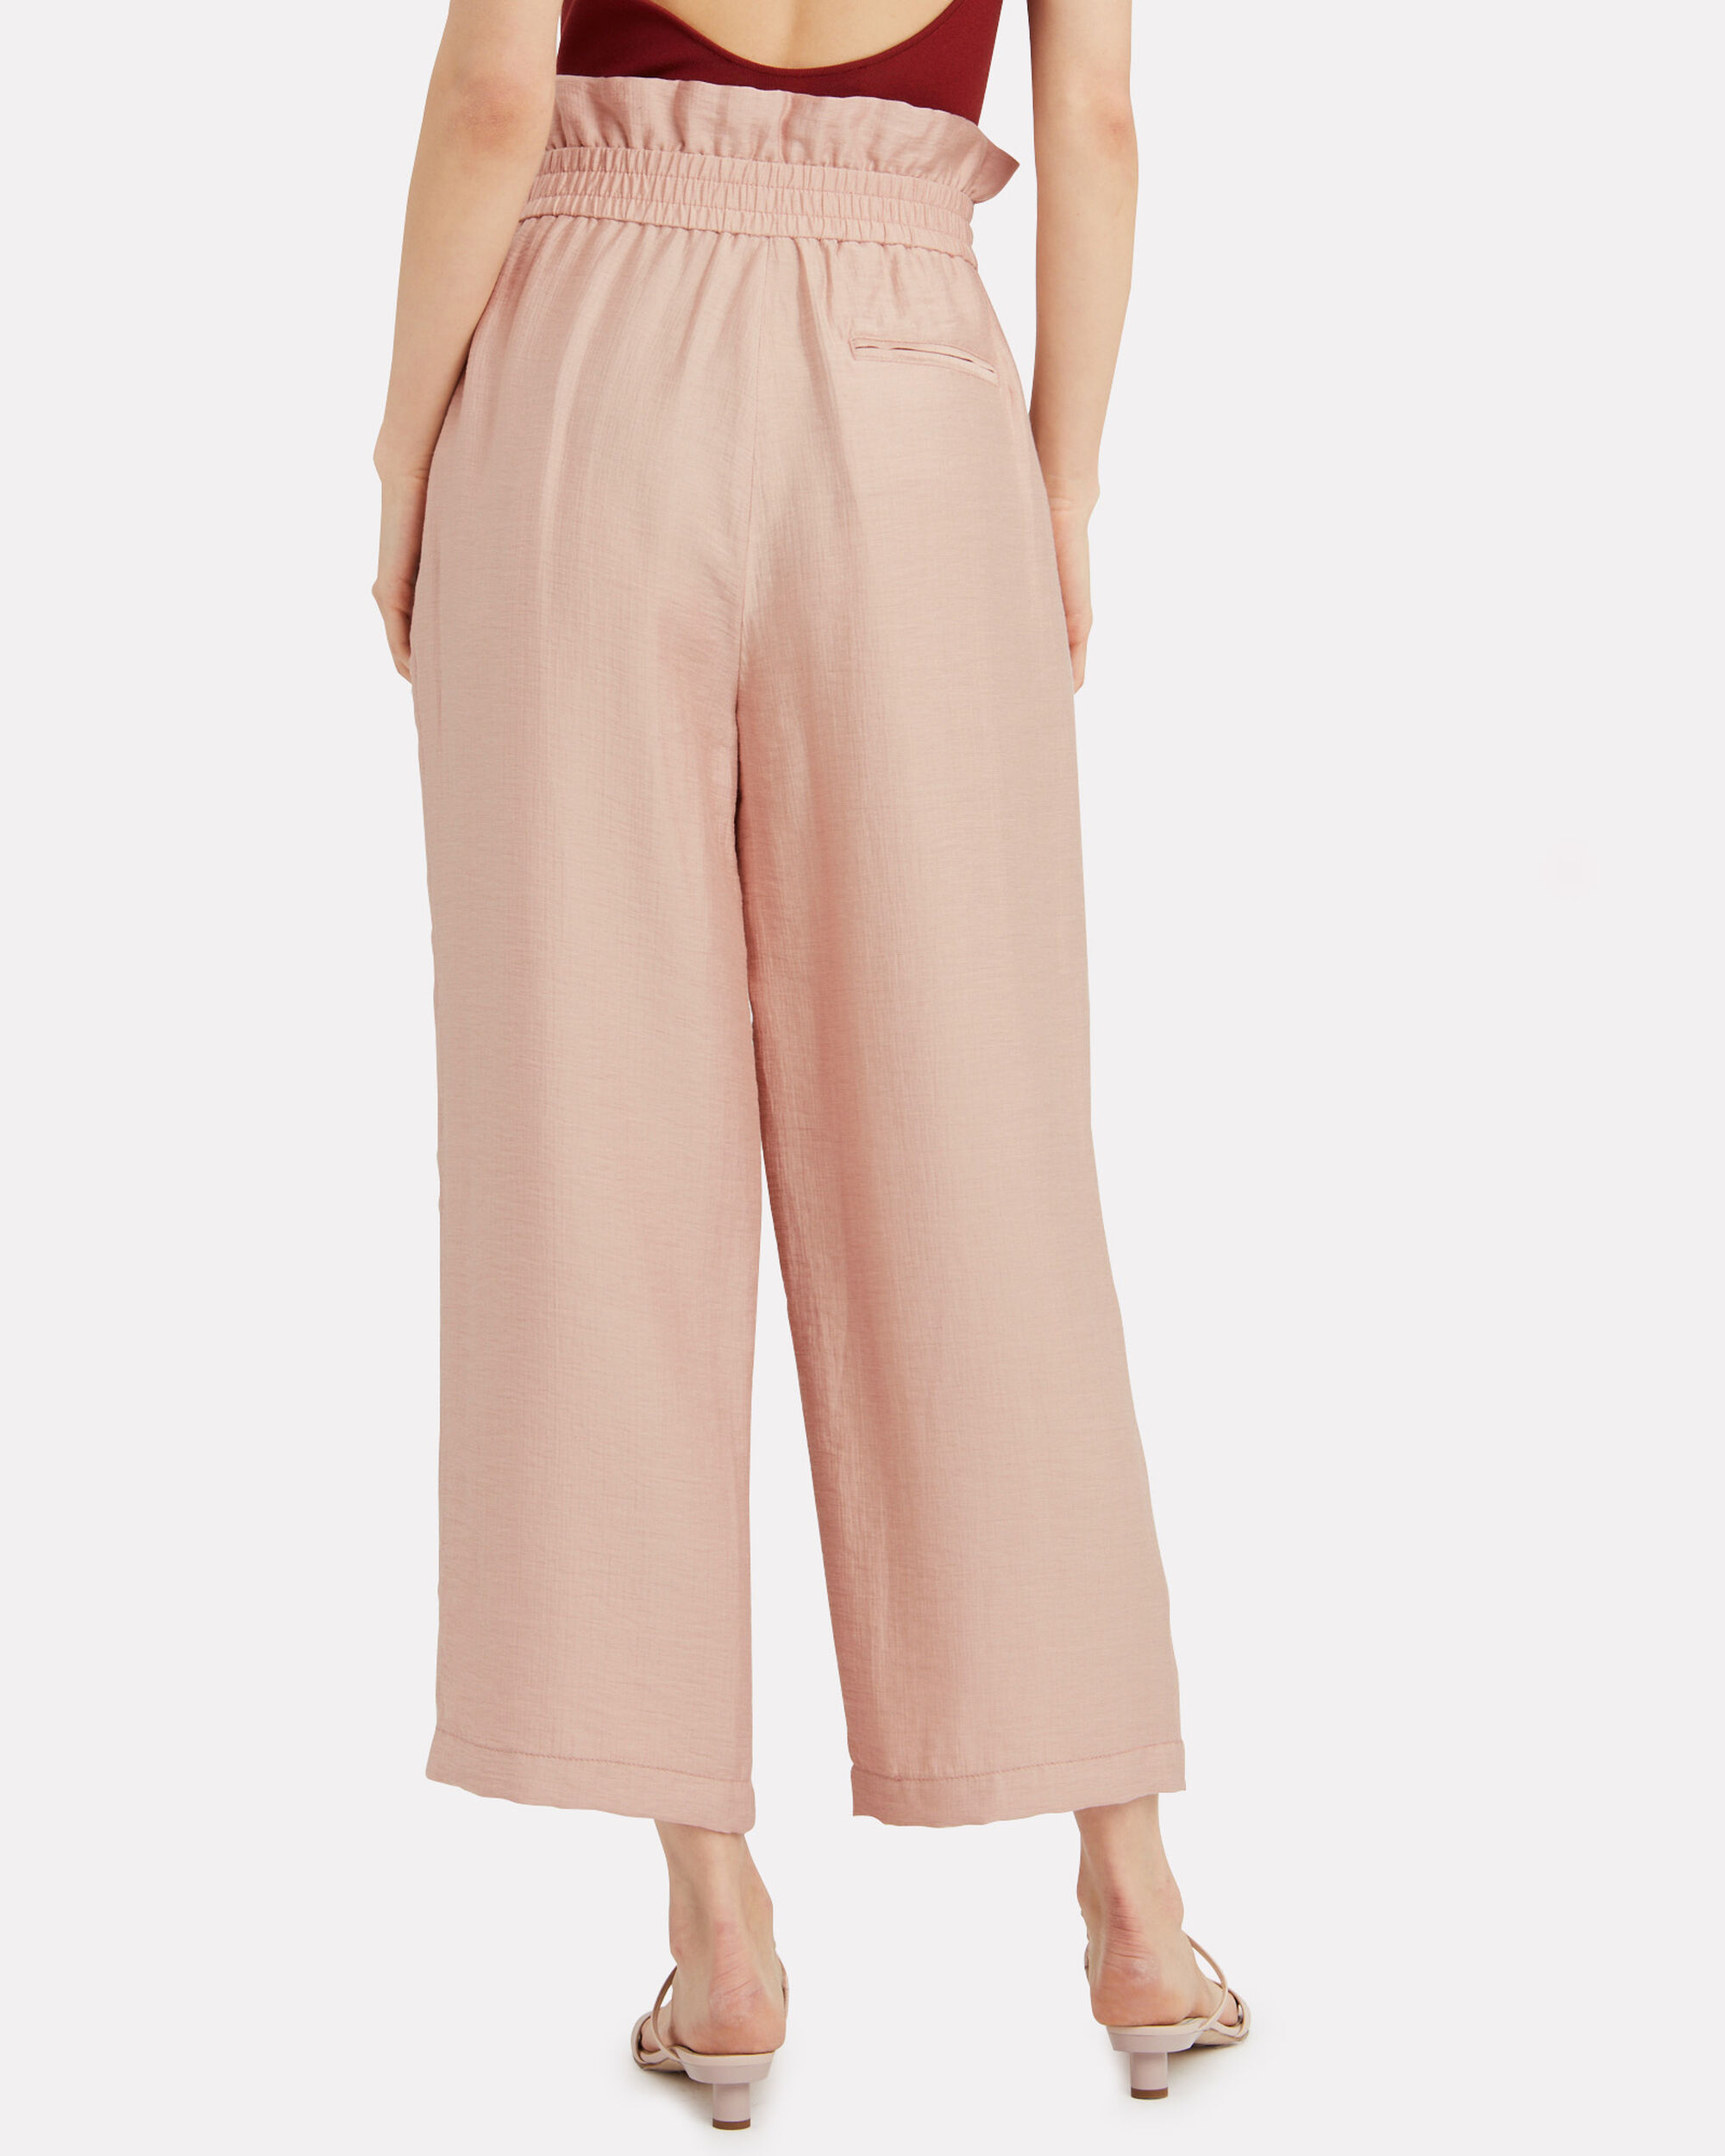 Crepe Paperbag Pants, BLUSH, hi-res